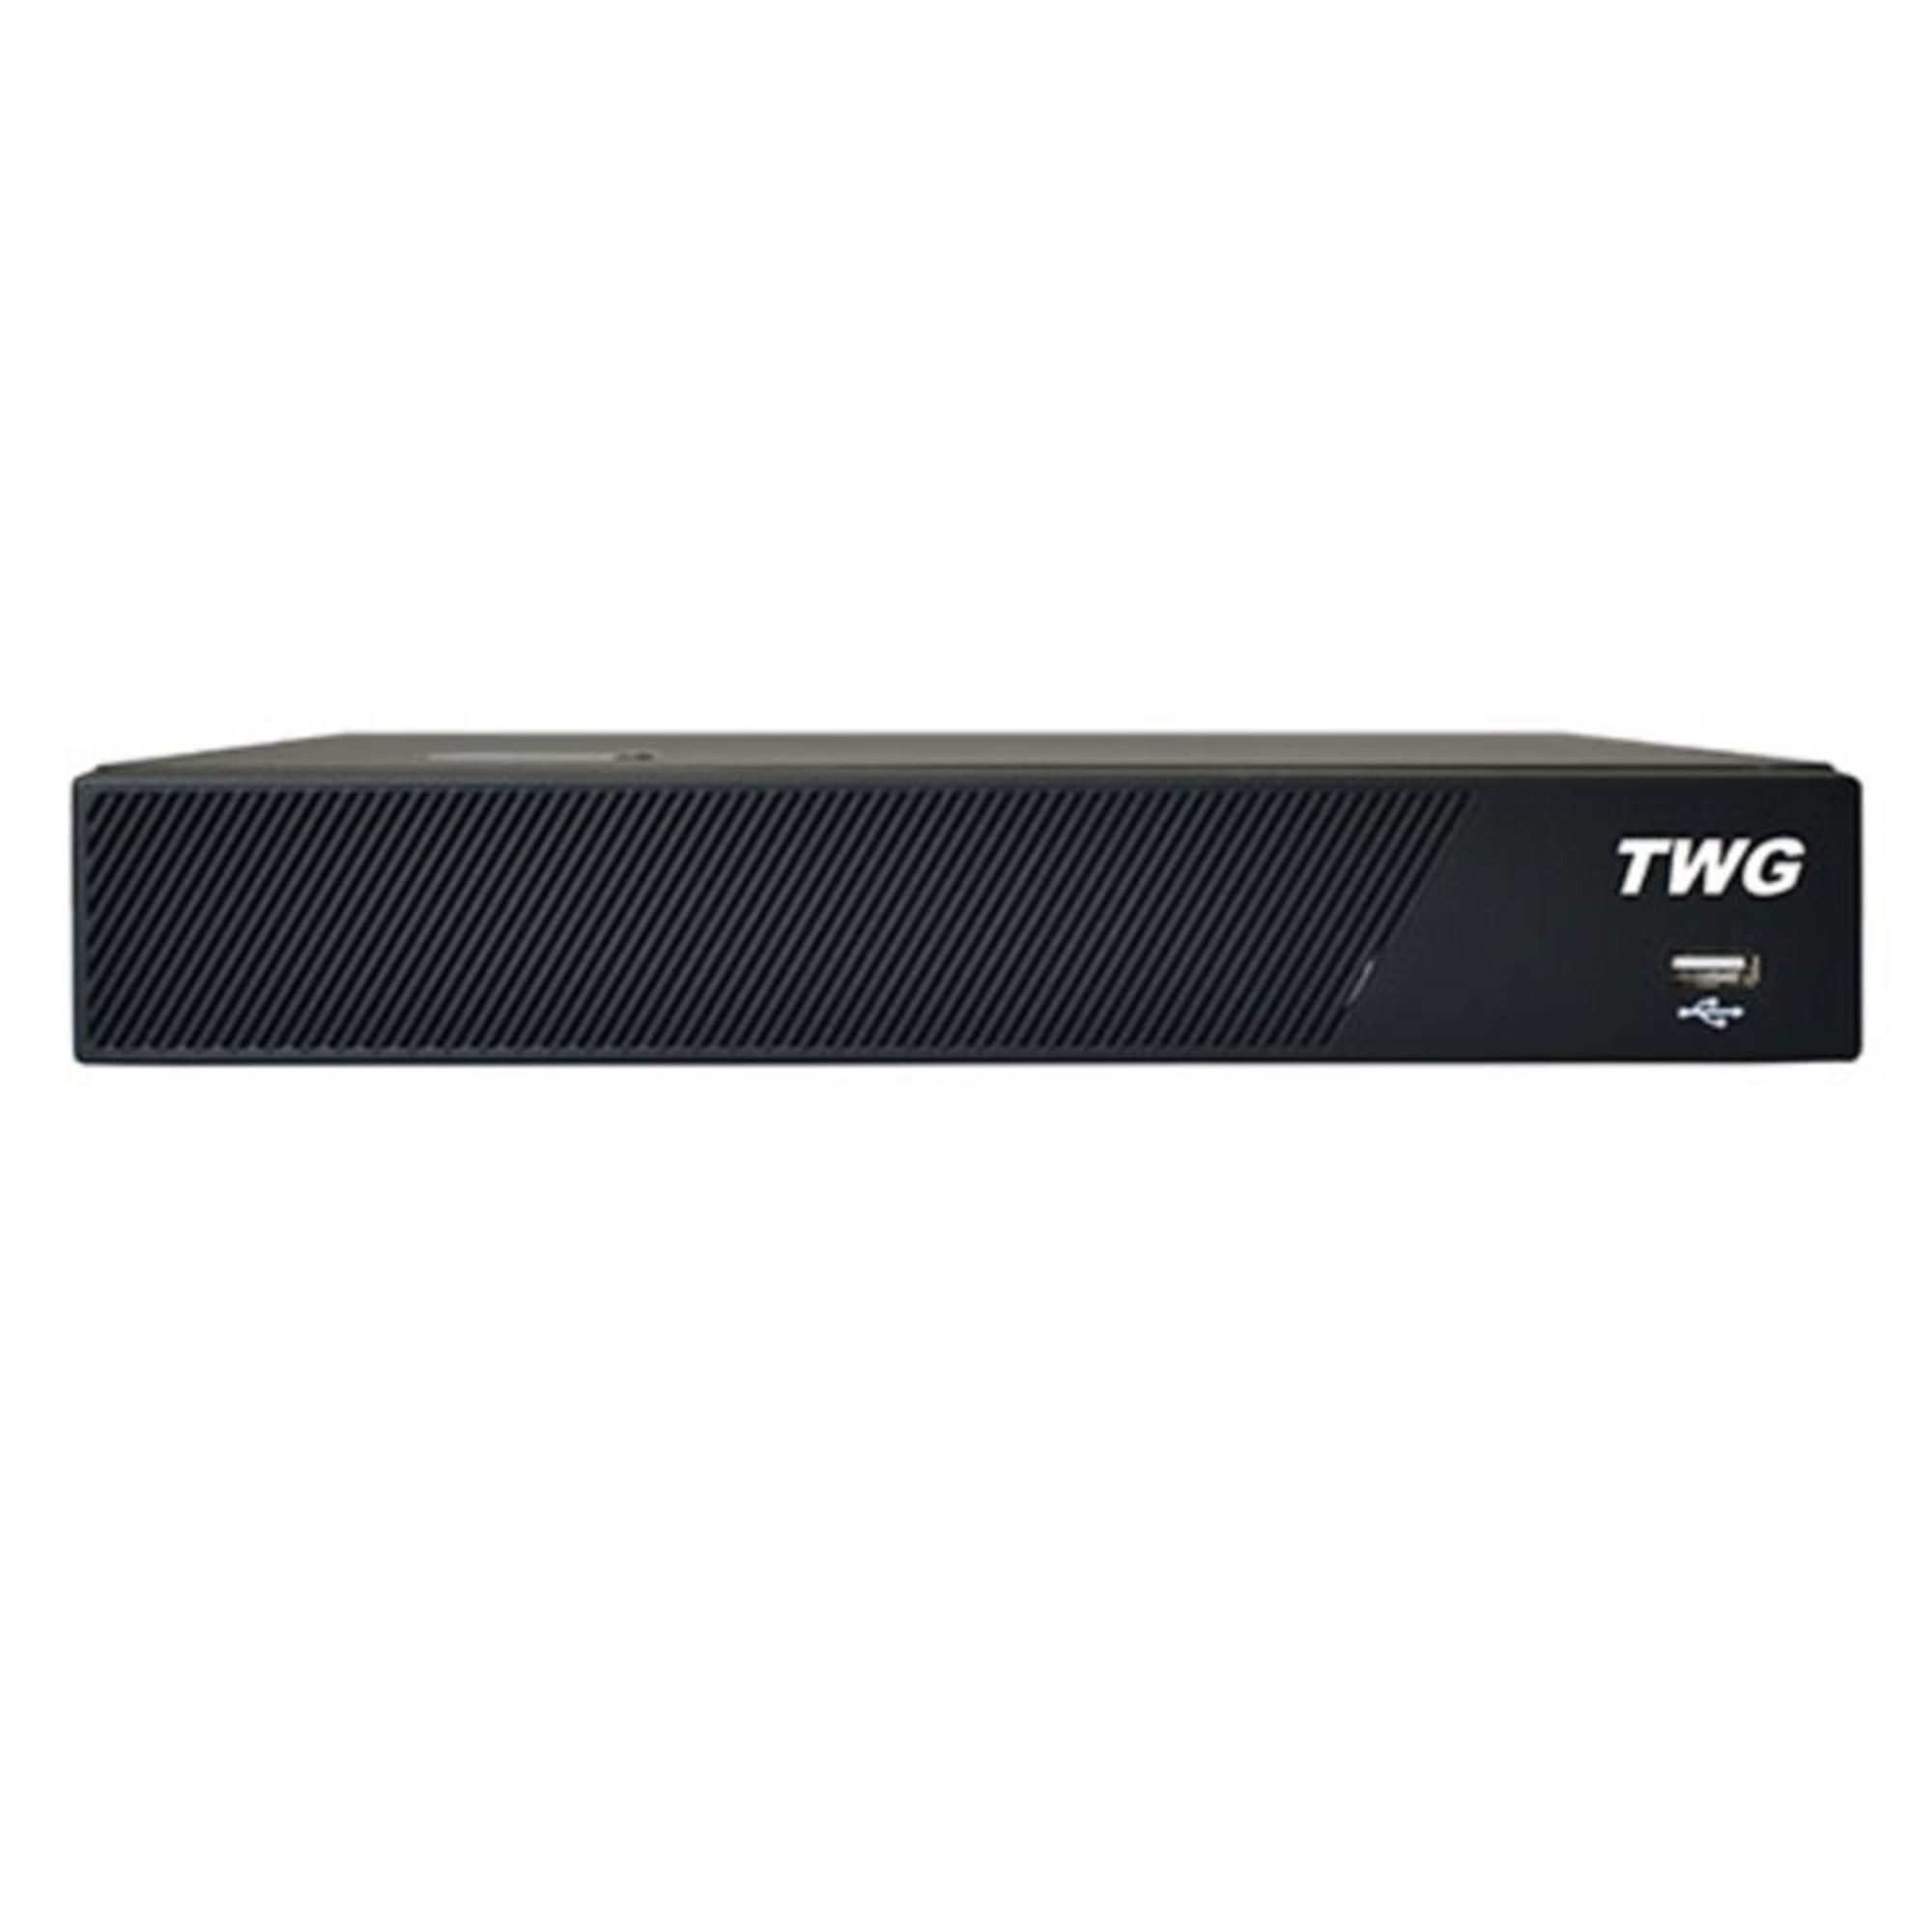 DVR Stand Alone 4 Canais TWG Full HD 5 em 1